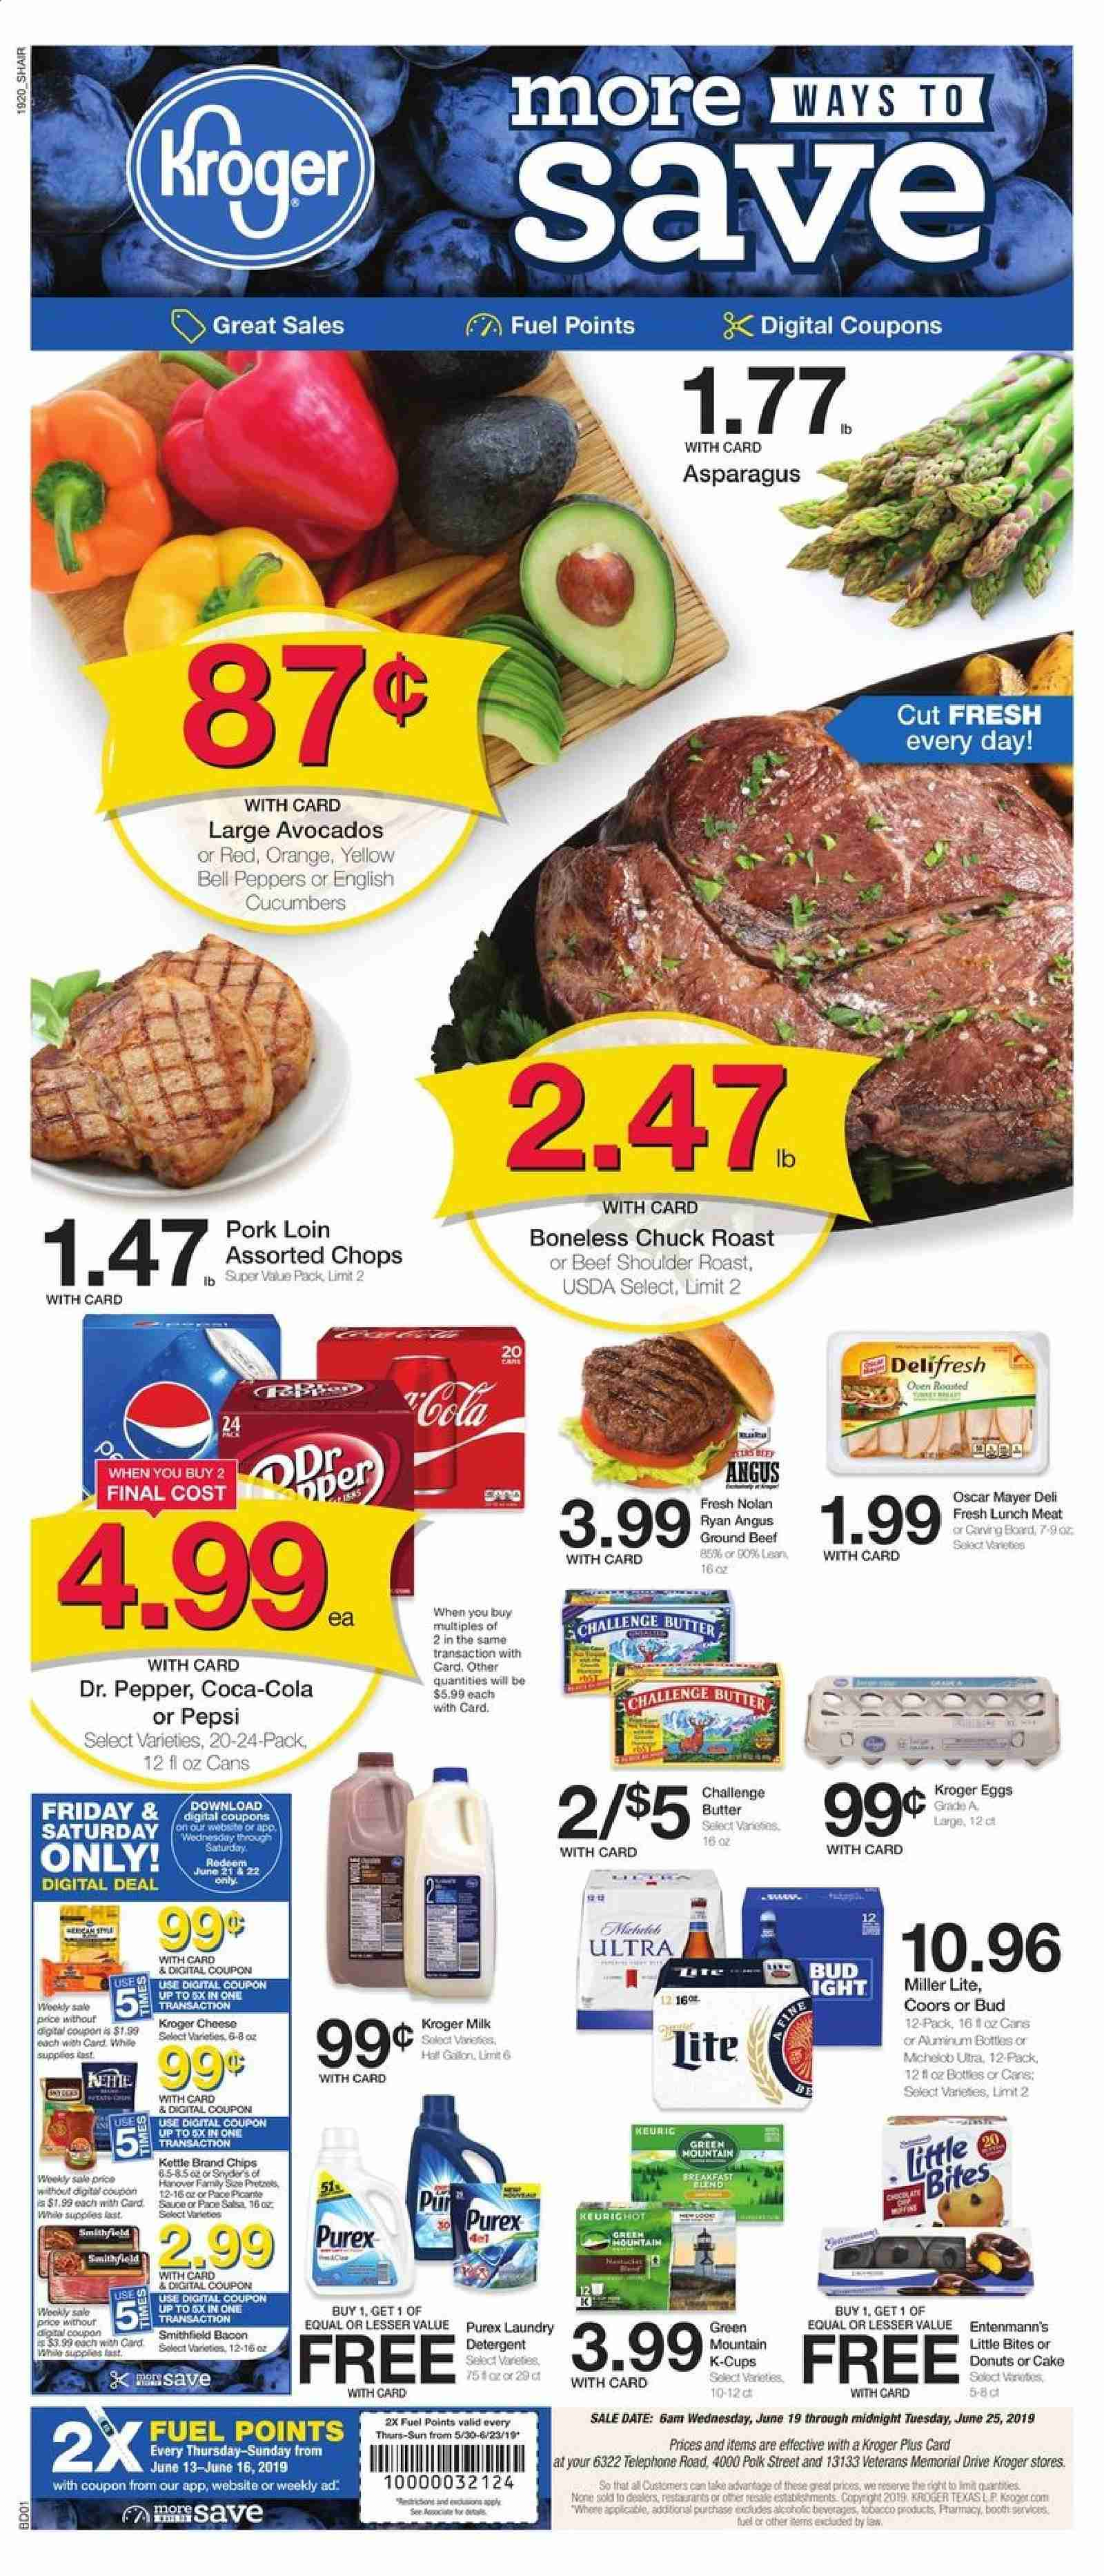 Kroger Flyer - 06.19.2019 - 06.25.2019 - Sales products - Miller Lite, Coors, Michelob, asparagus, bell peppers, cucumbers, peppers, avocado, orange, cake, donut, lunch meat, cheese, milk, eggs, butter, salsa, chips, pepper, Coca-Cola, Pepsi, Dr. Pepper, beef meat, ground beef, pork loin, pork meat, detergent, laundry detergent, Cars, oven, kettle, fuel. Page 1.